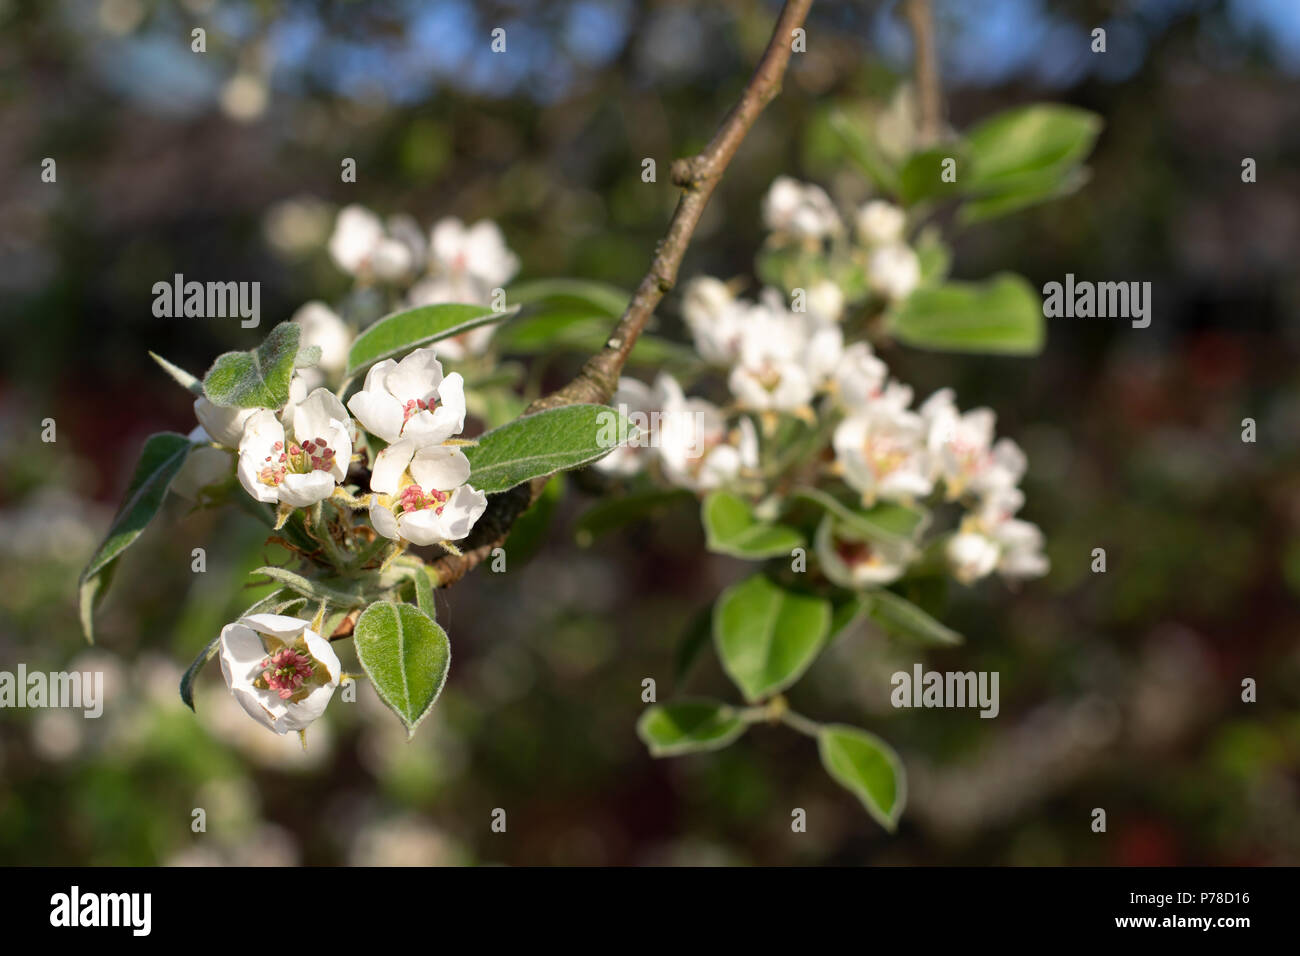 Fruit flowers - Stock Image